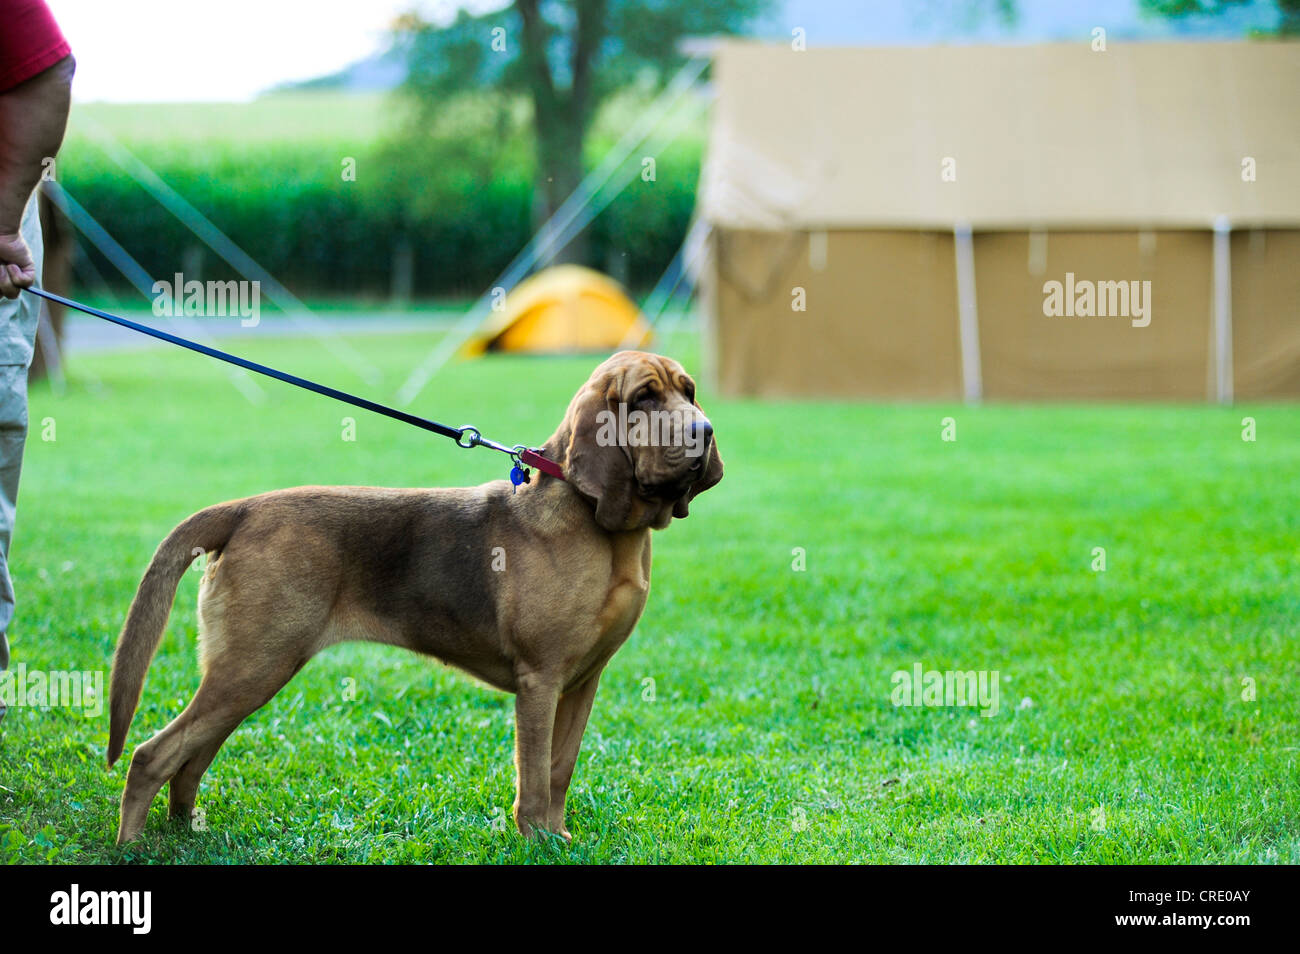 BLOODHOUND SEARCH AND RESCUE DOG - Stock Image